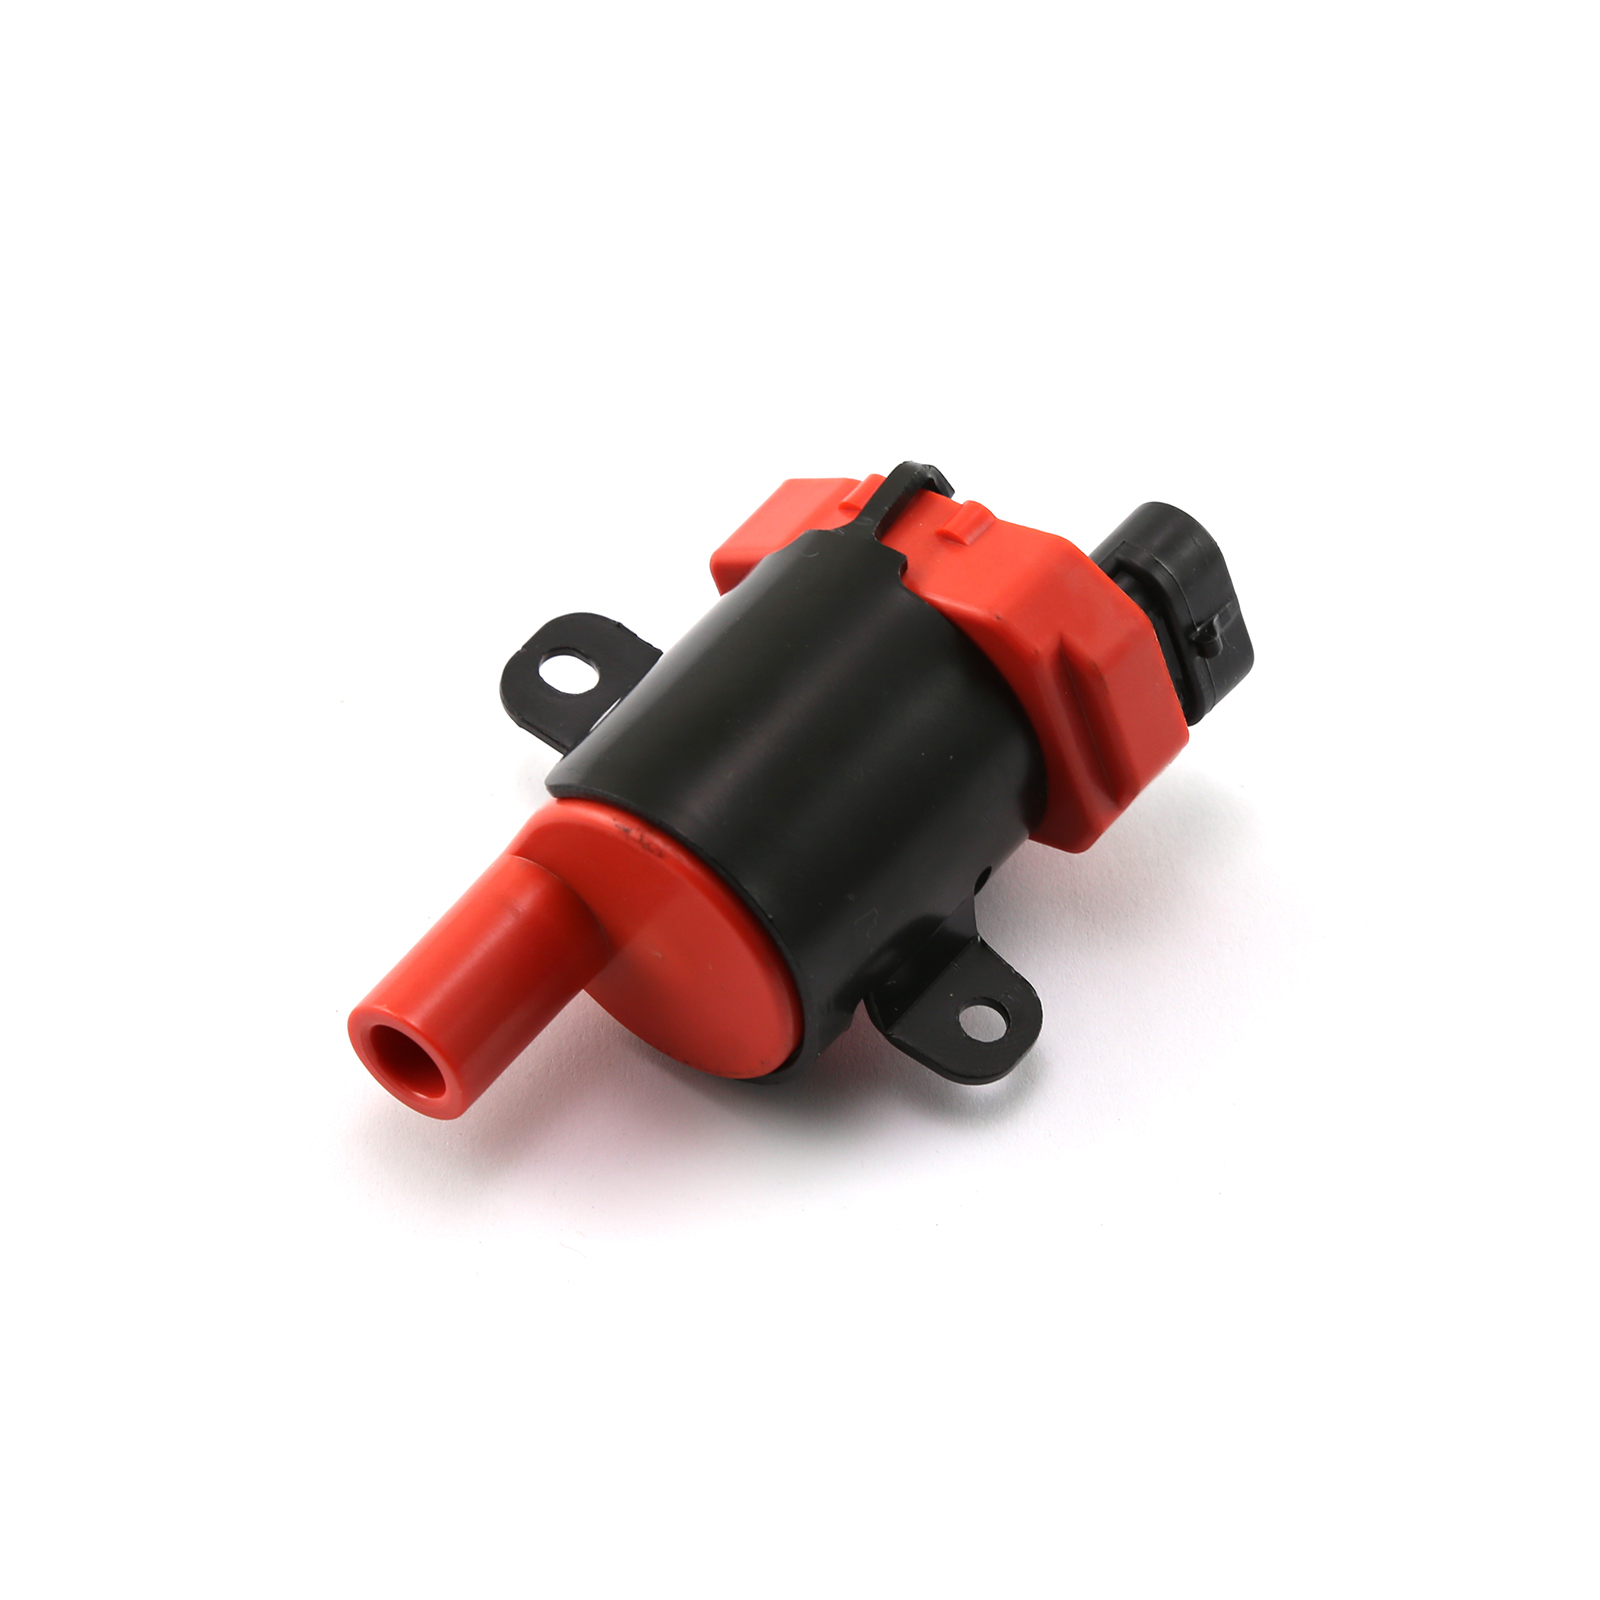 GM Ls Ignition Coil On Plug (D585)